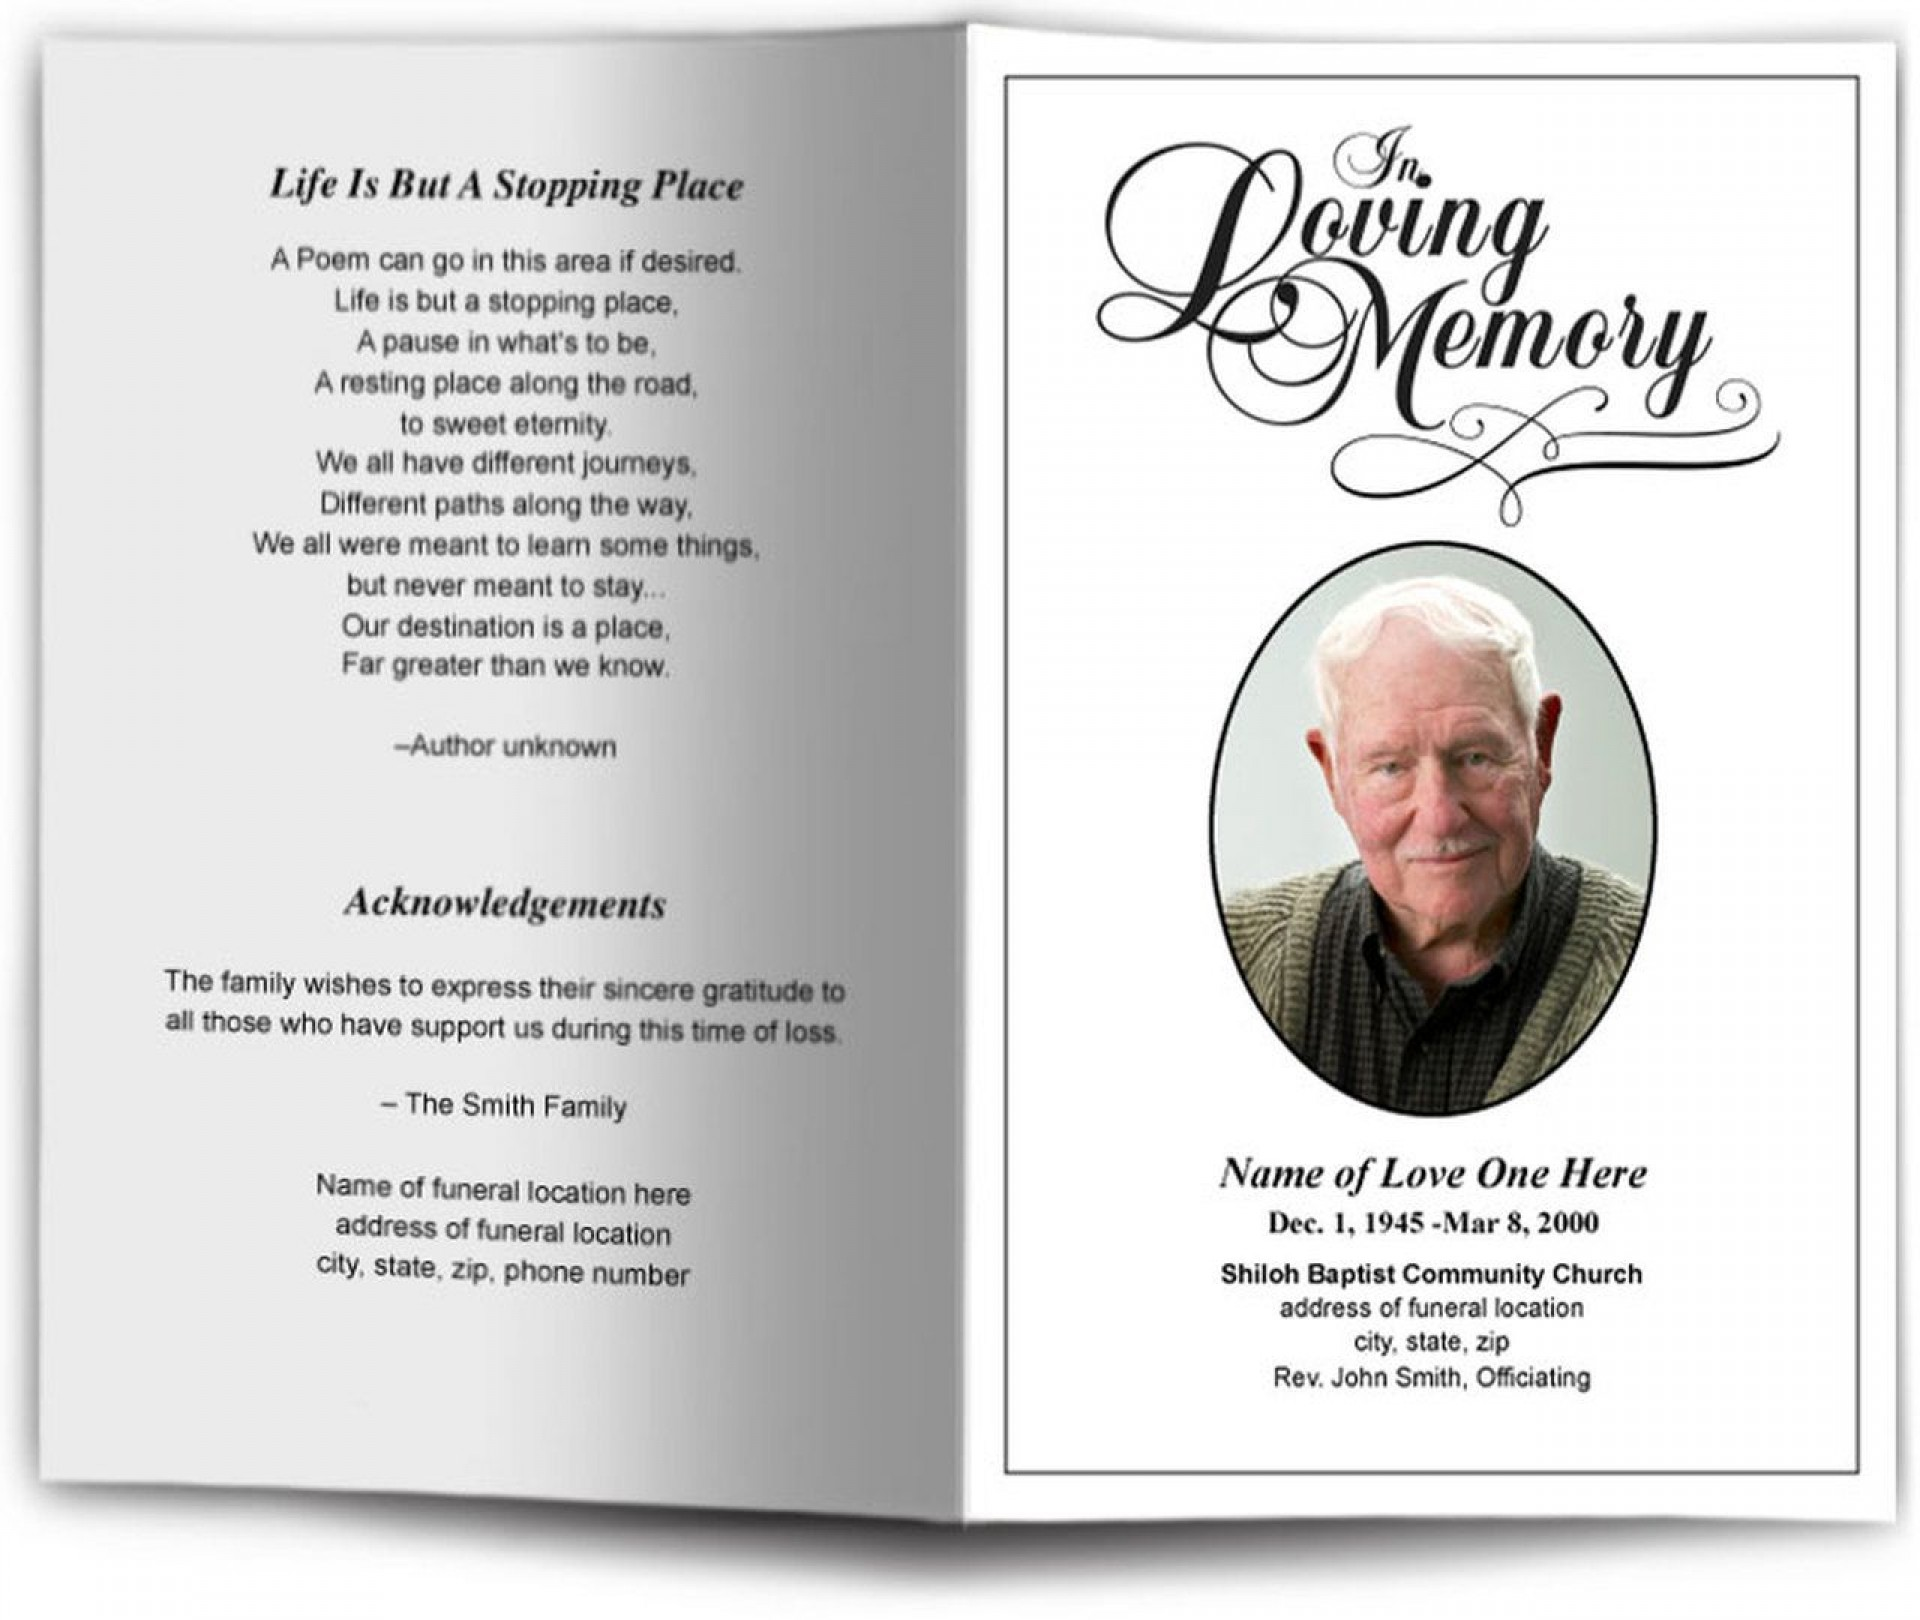 009 Magnificent In Loving Memory Template Example  Bookmark Free Download Meme1920